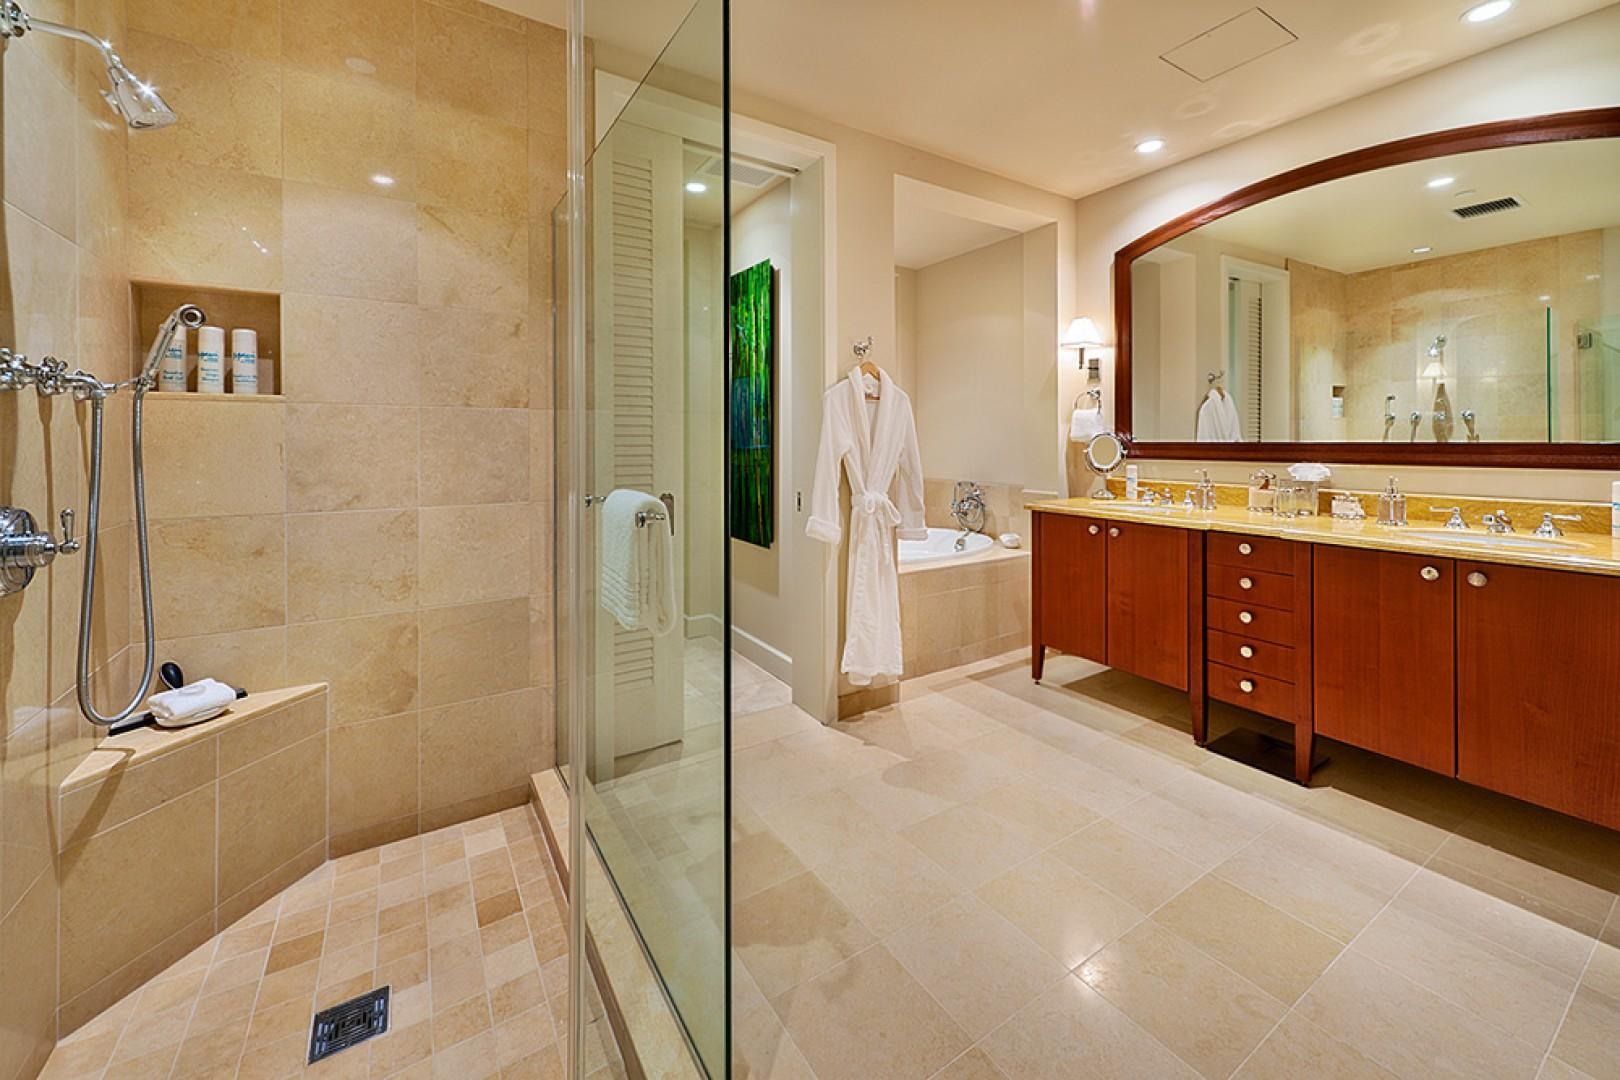 J405 Sea Breeze Suite Master Bedroom Bath with Ocean View Soaking Tub, Glass Shower, Dual Vanities and Private WC